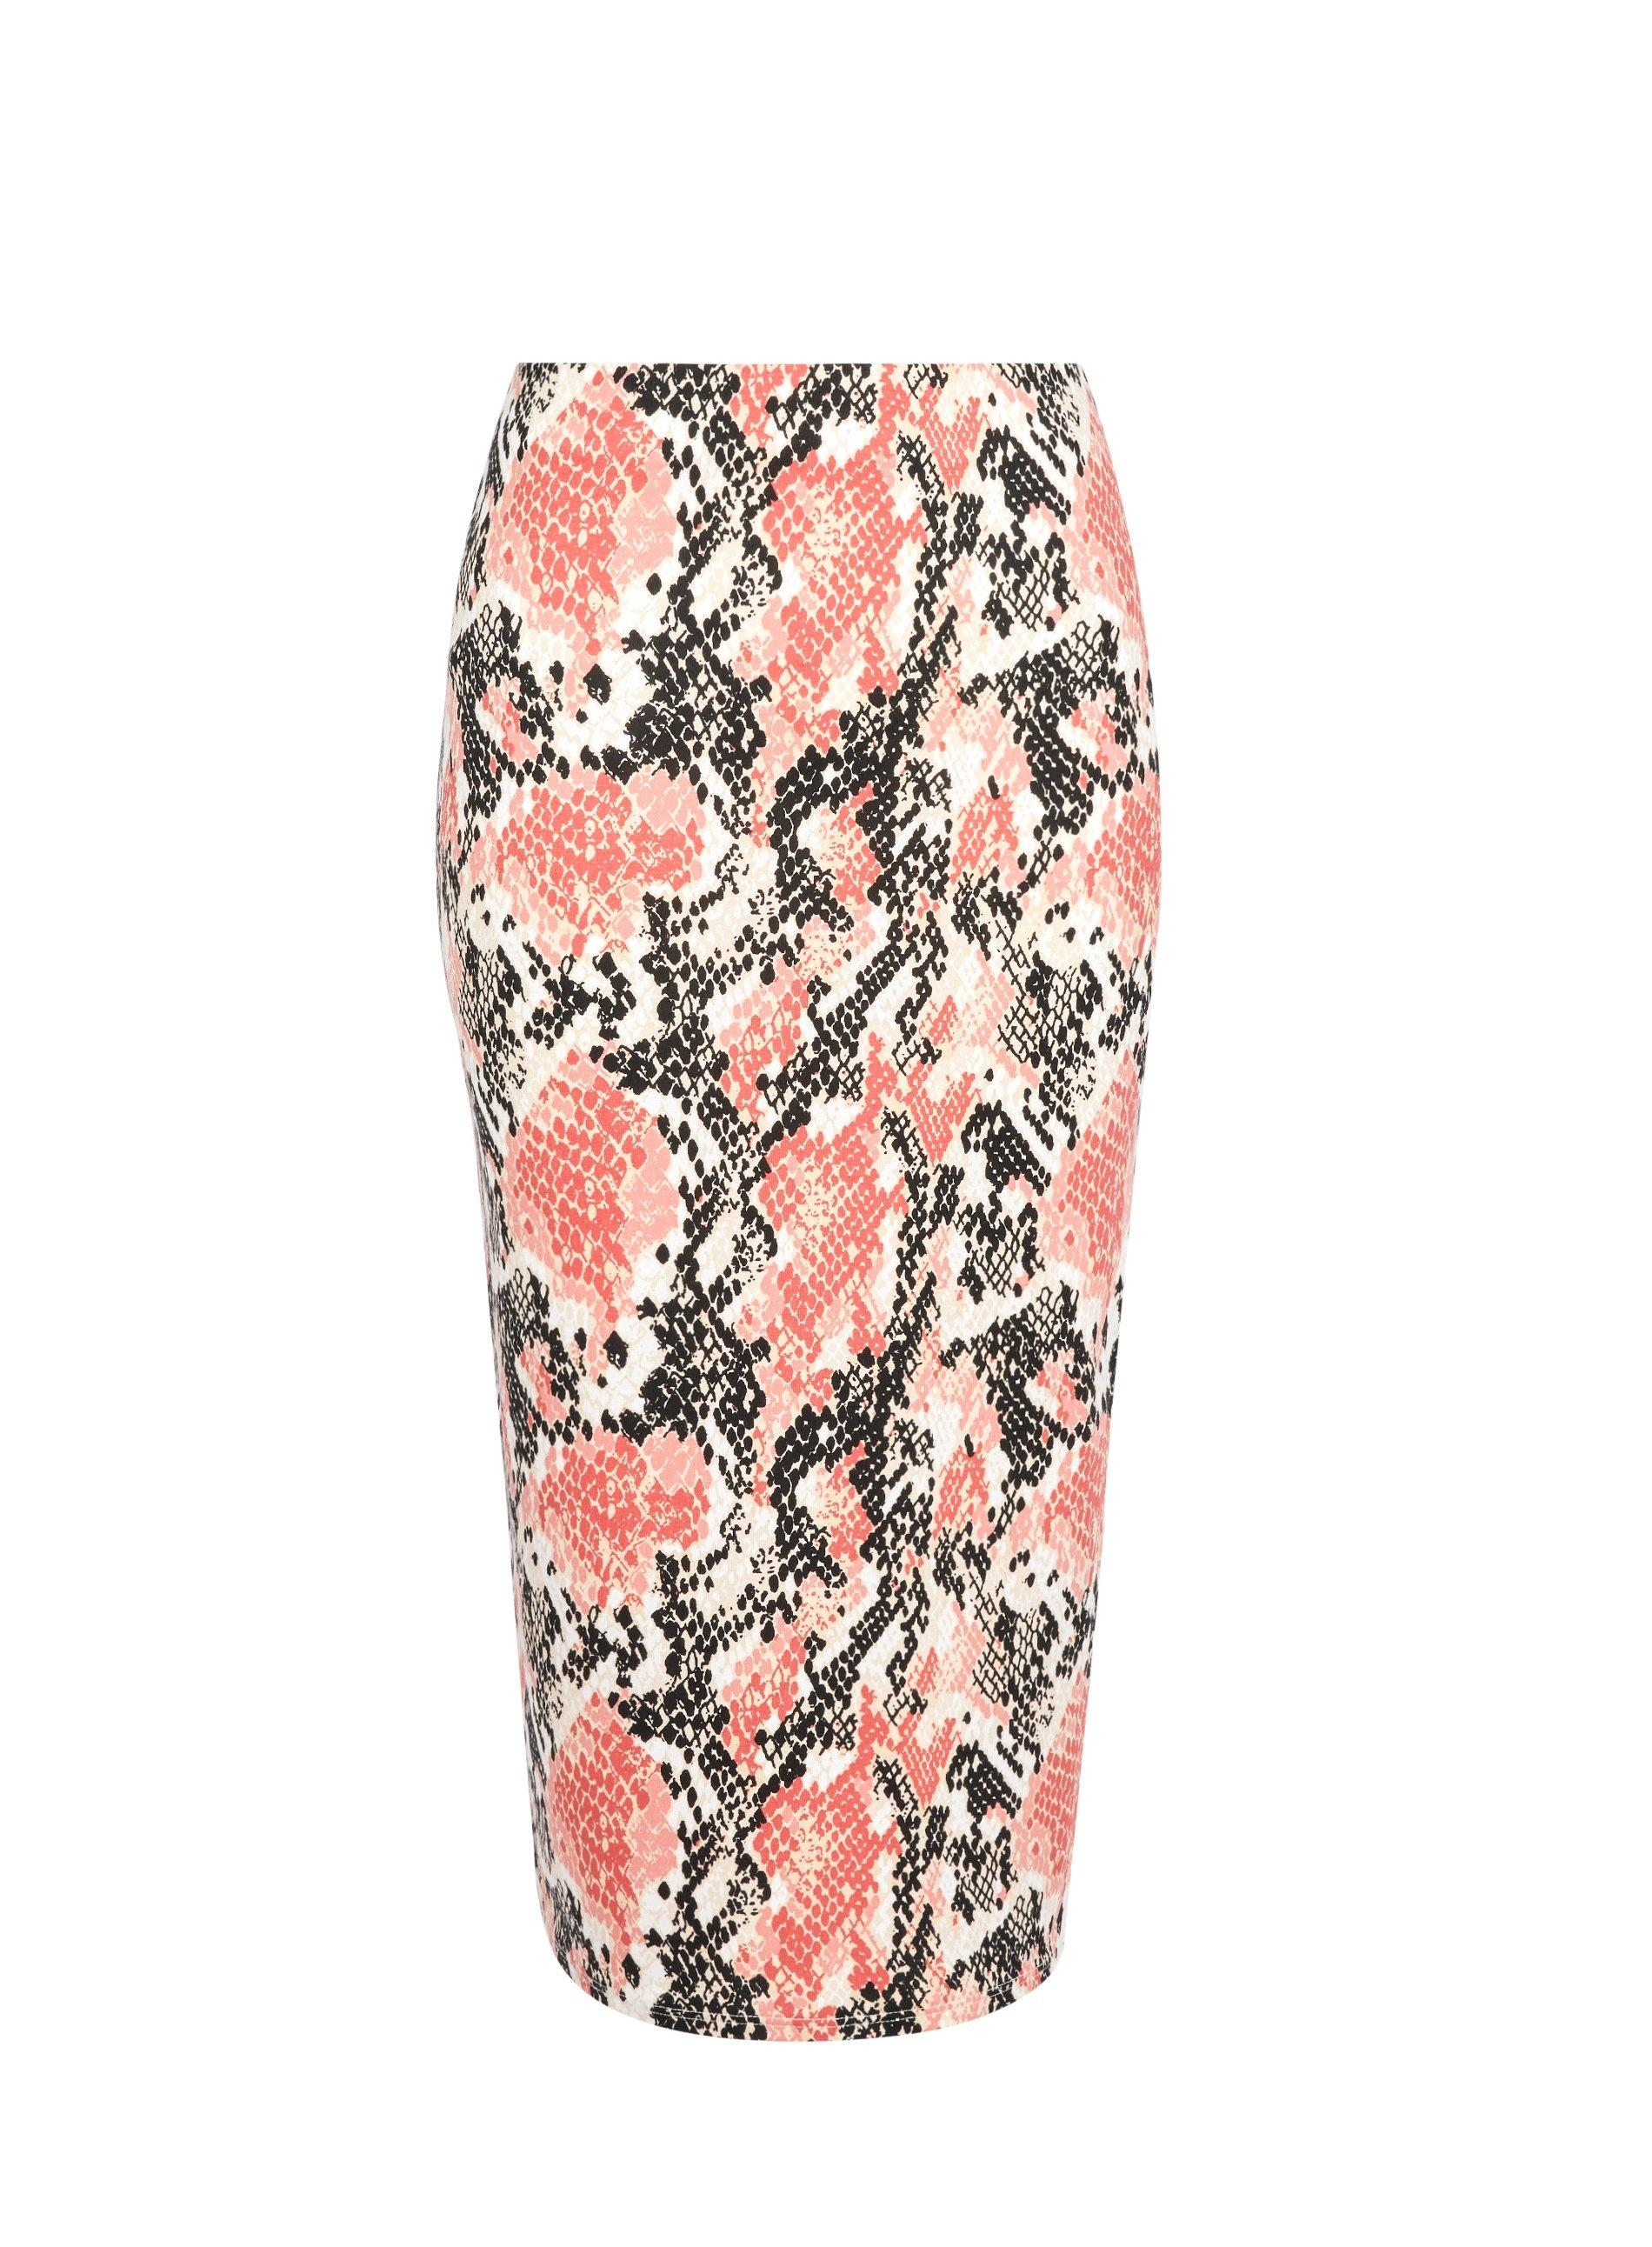 cfa08ddc31 Dorothy Perkins. Women's Pink Multi Coloured Coral Snake Print Pencil Skirt